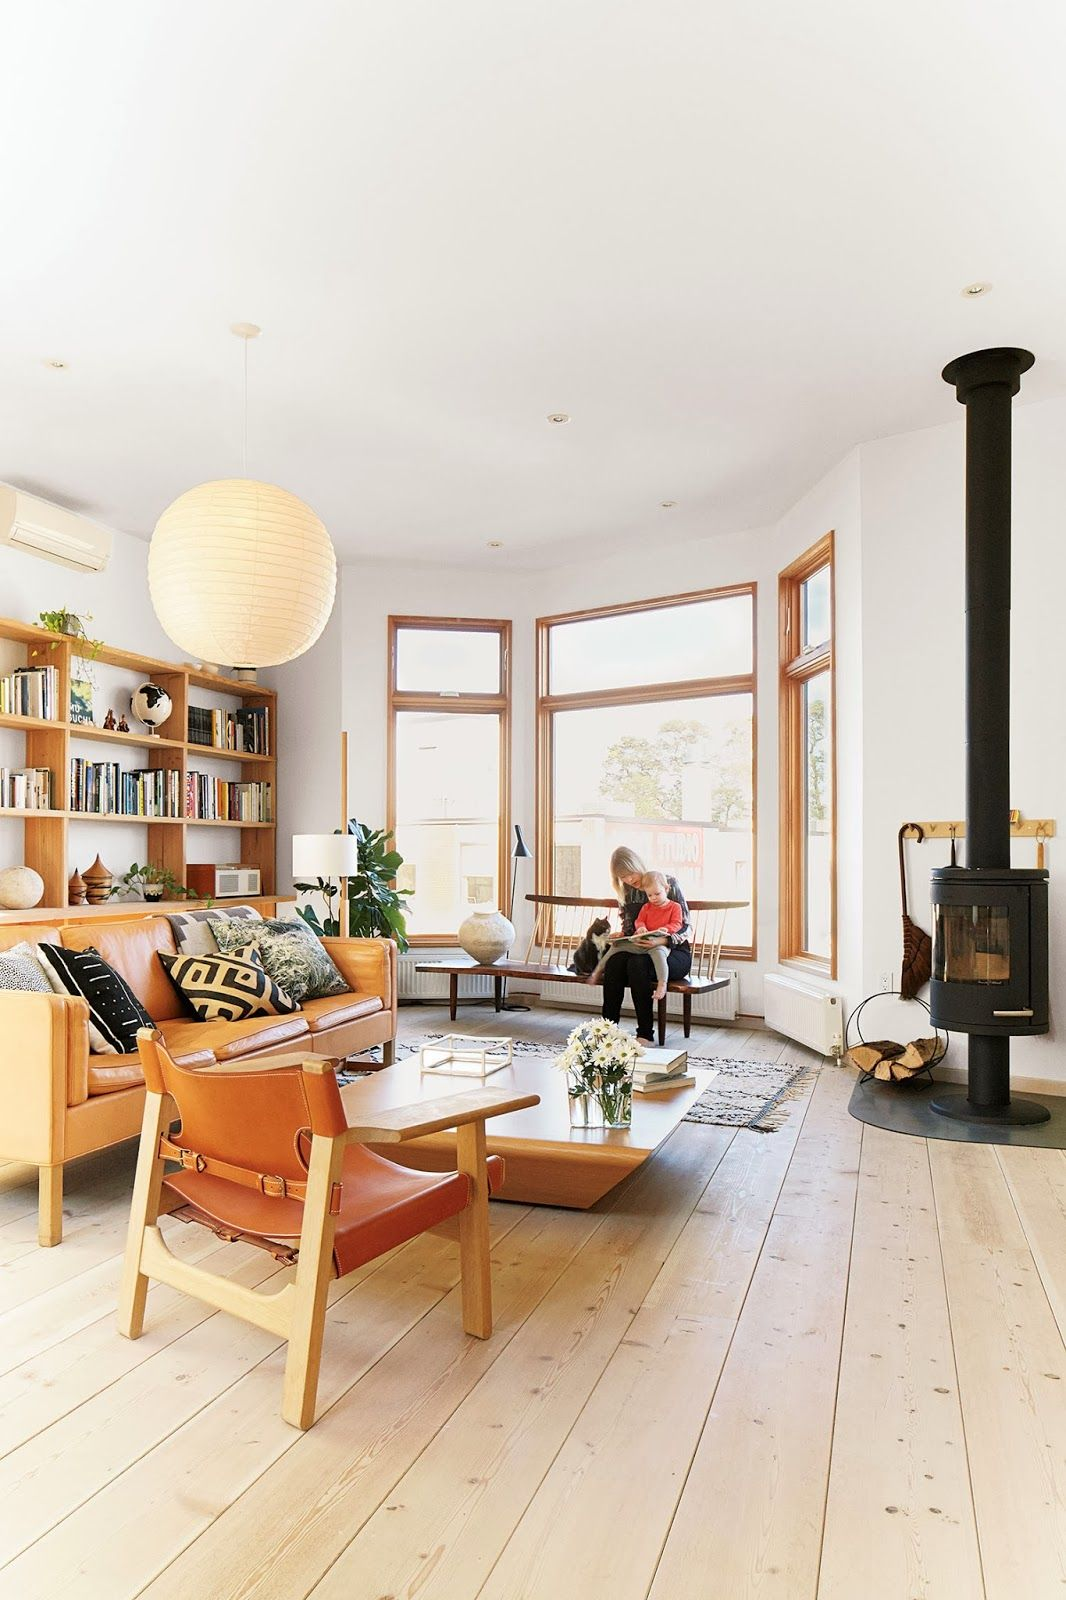 Toronto home | Warm colors, Living rooms and Room